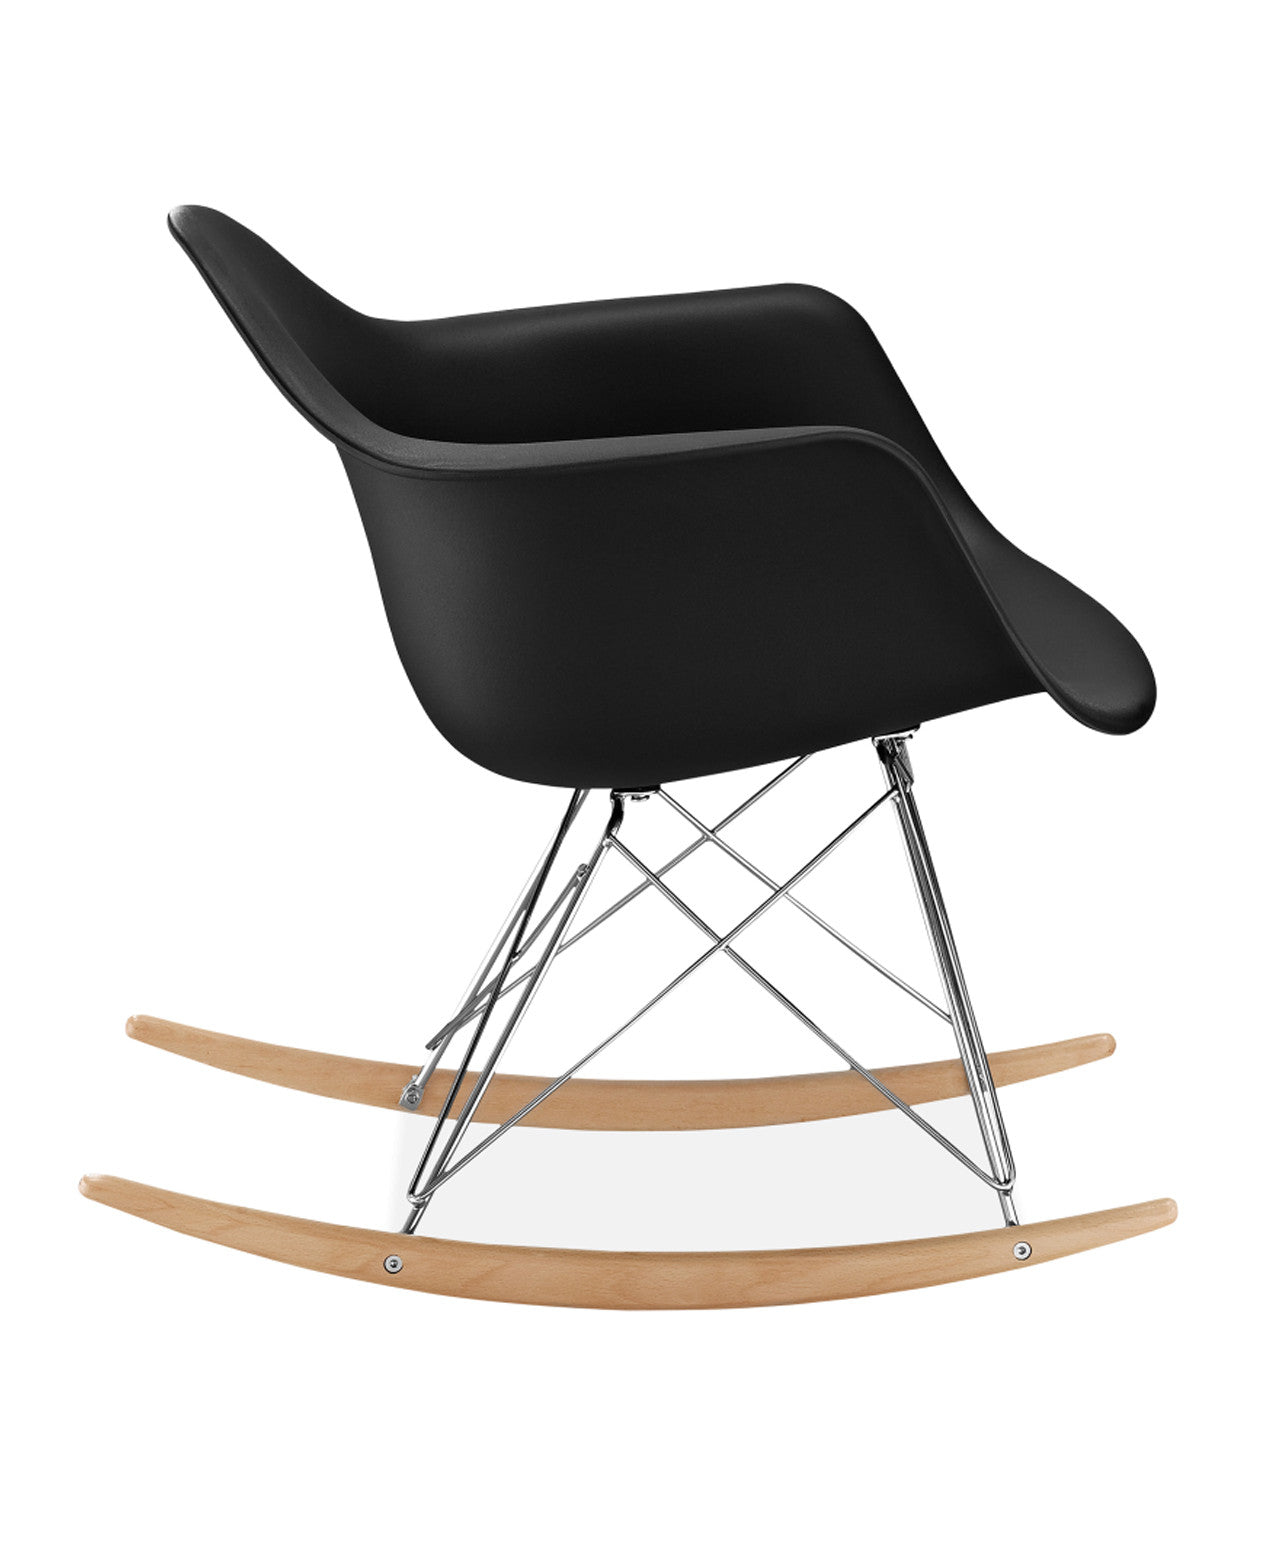 Charles eames rocking chair for Schwan sessel replica